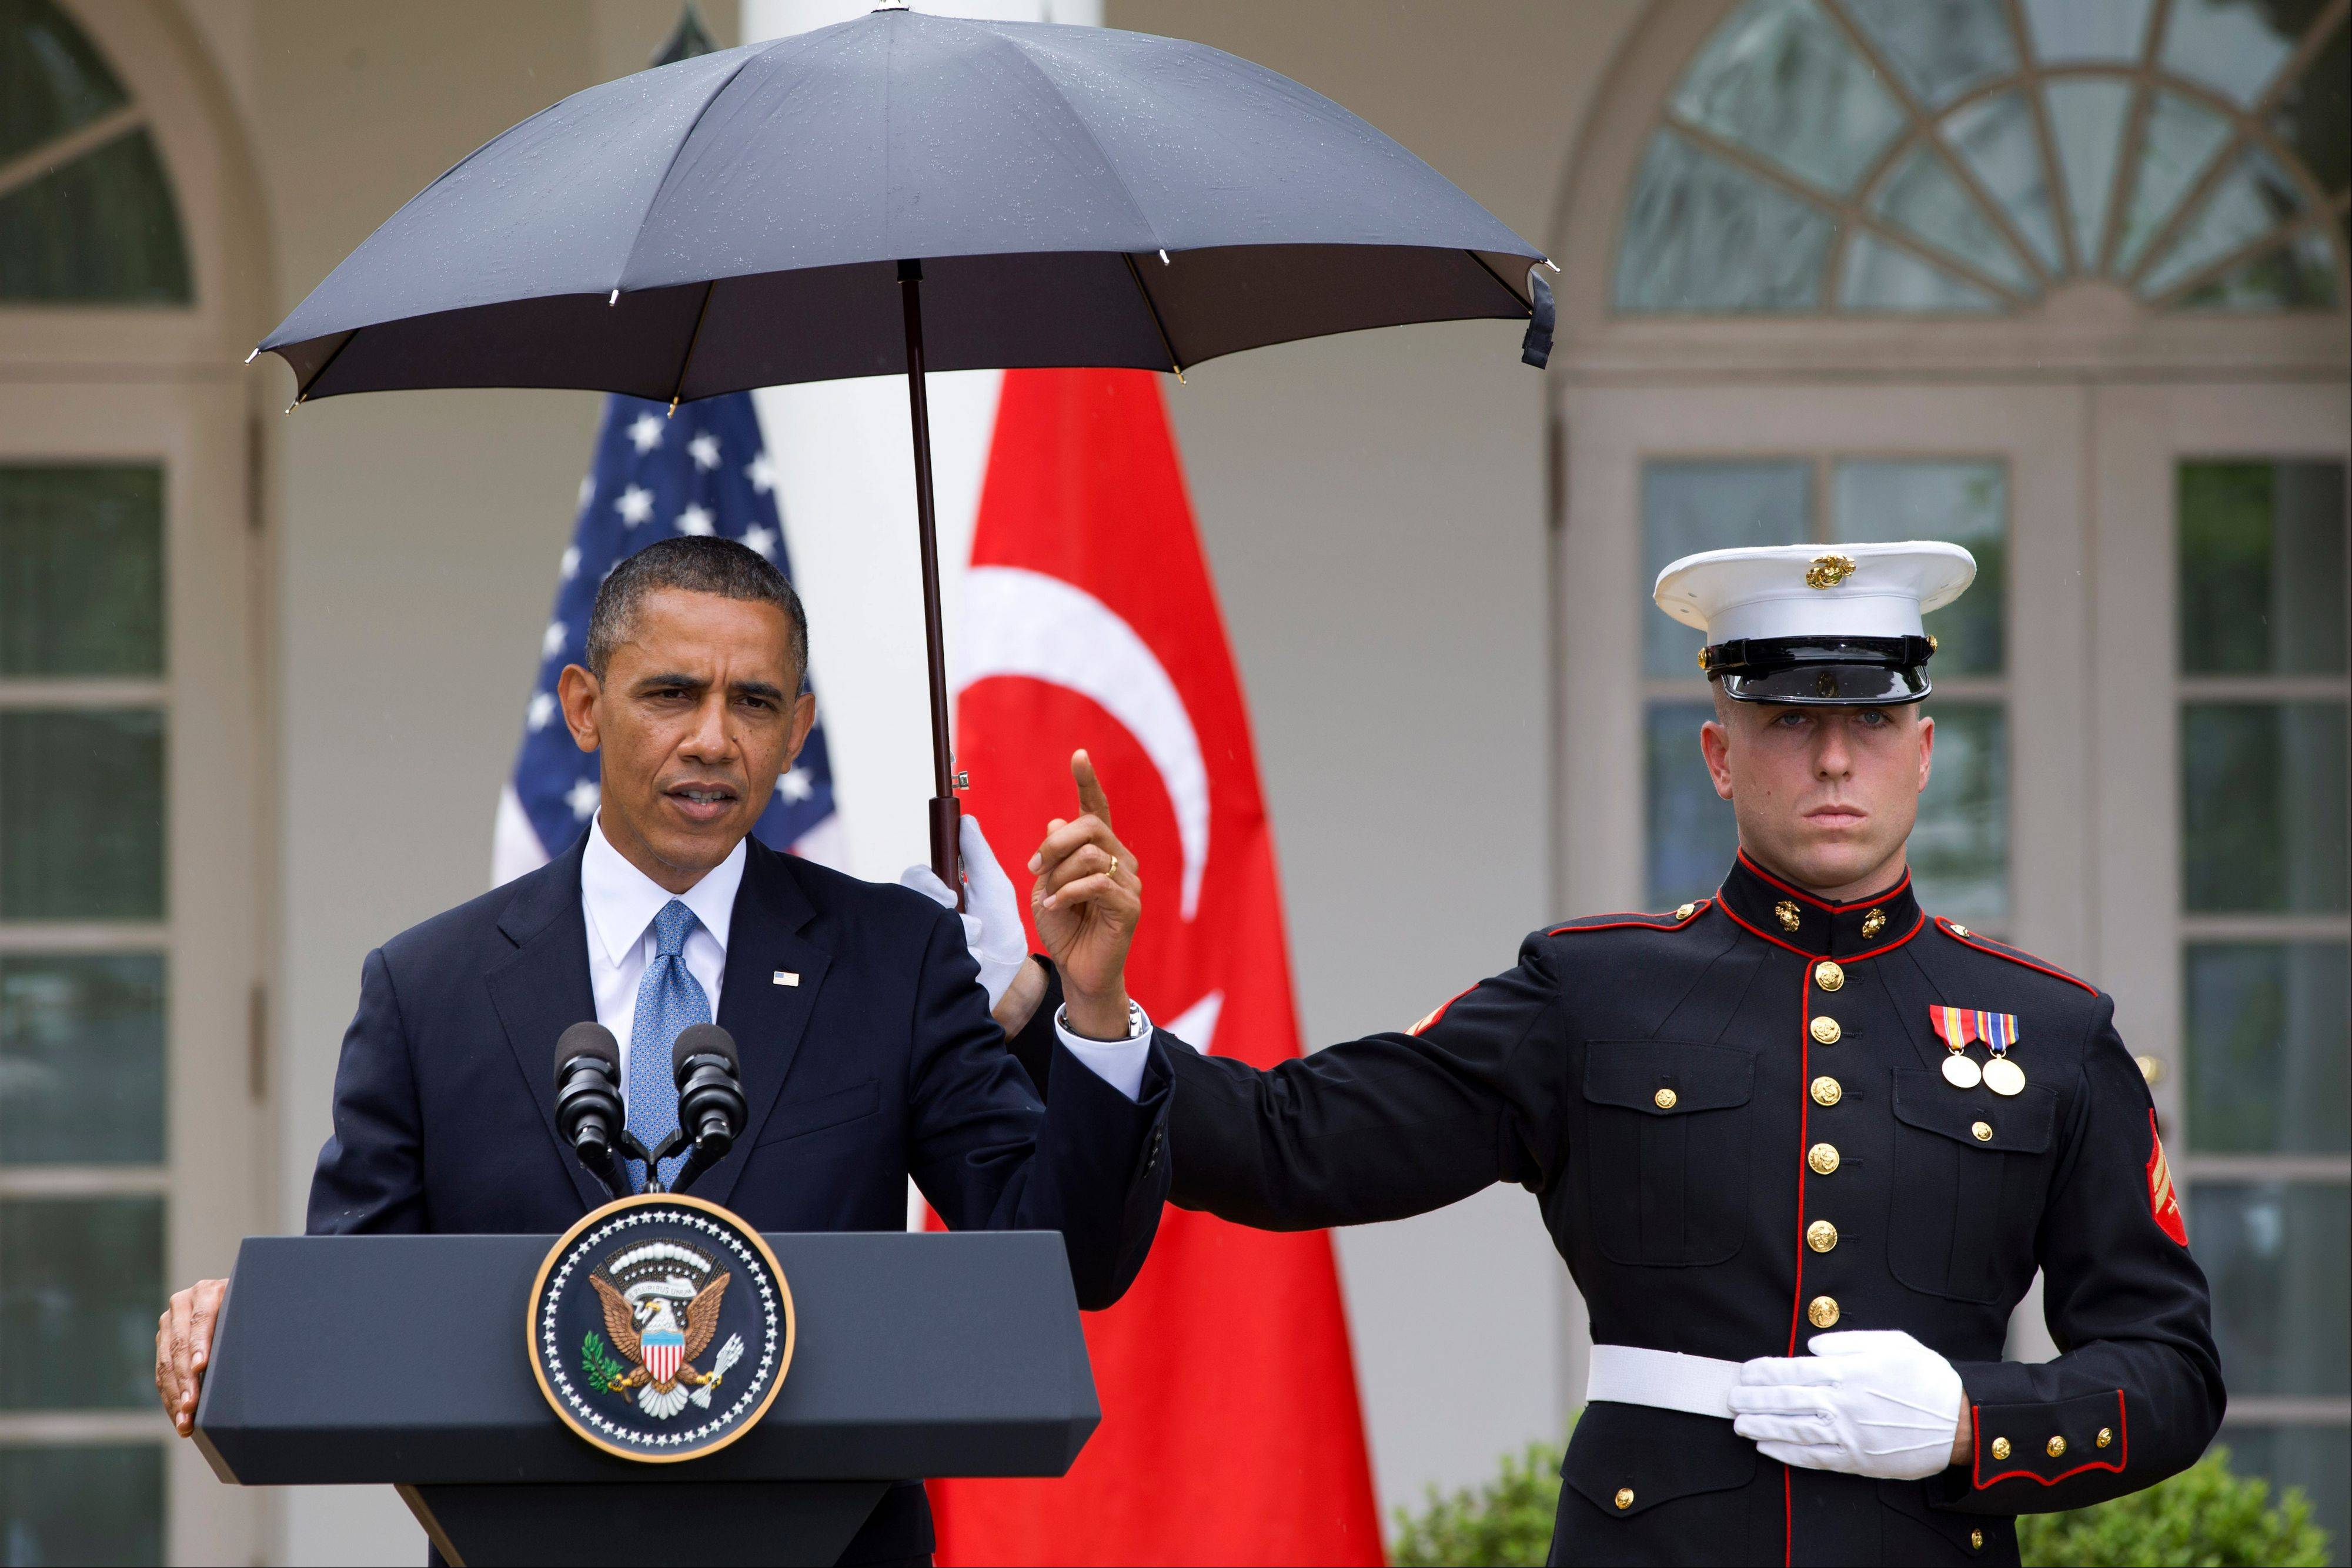 President Barack Obama speaks under an umbrella held by a Marine as a light rain falls during a news conference with Turkish Prime Minister Recep Tayyip Erdogan Thursday in the Rose Garden of the White House. Obama also addressed the controversy over IRS targeting specific organizations .